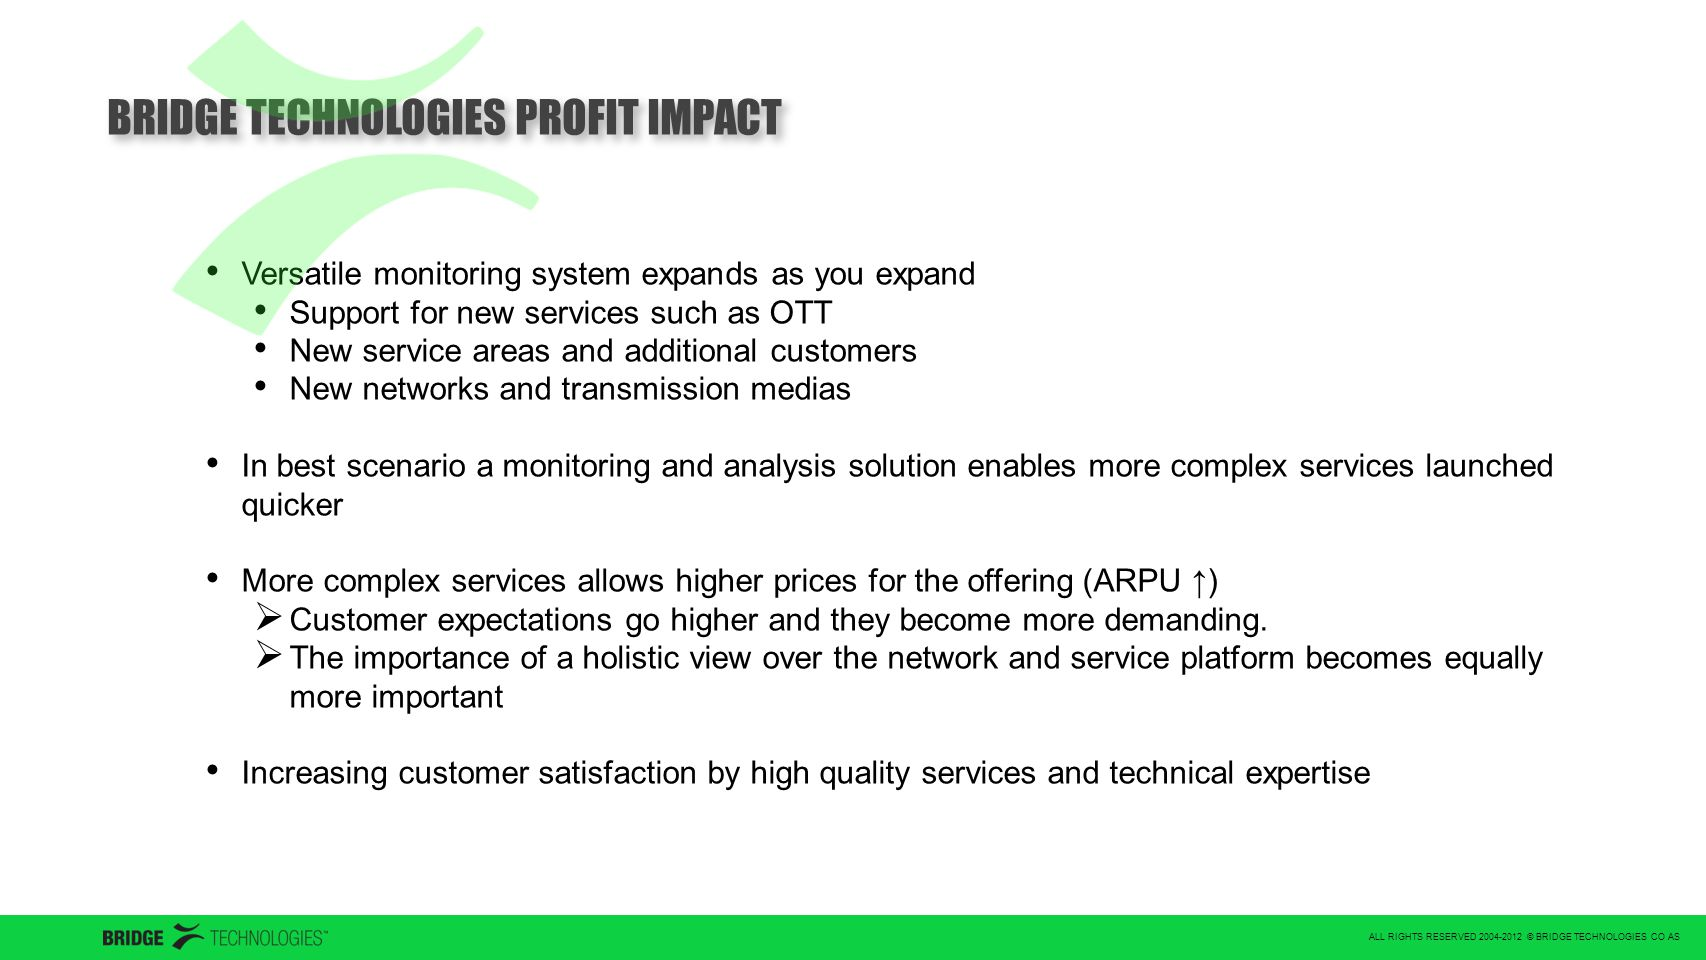 ALL RIGHTS RESERVED 2004-2012 © BRIDGE TECHNOLOGIES CO AS BRIDGE TECHNOLOGIES PROFIT IMPACT Versatile monitoring system expands as you expand Support for new services such as OTT New service areas and additional customers New networks and transmission medias In best scenario a monitoring and analysis solution enables more complex services launched quicker More complex services allows higher prices for the offering (ARPU ↑)  Customer expectations go higher and they become more demanding.